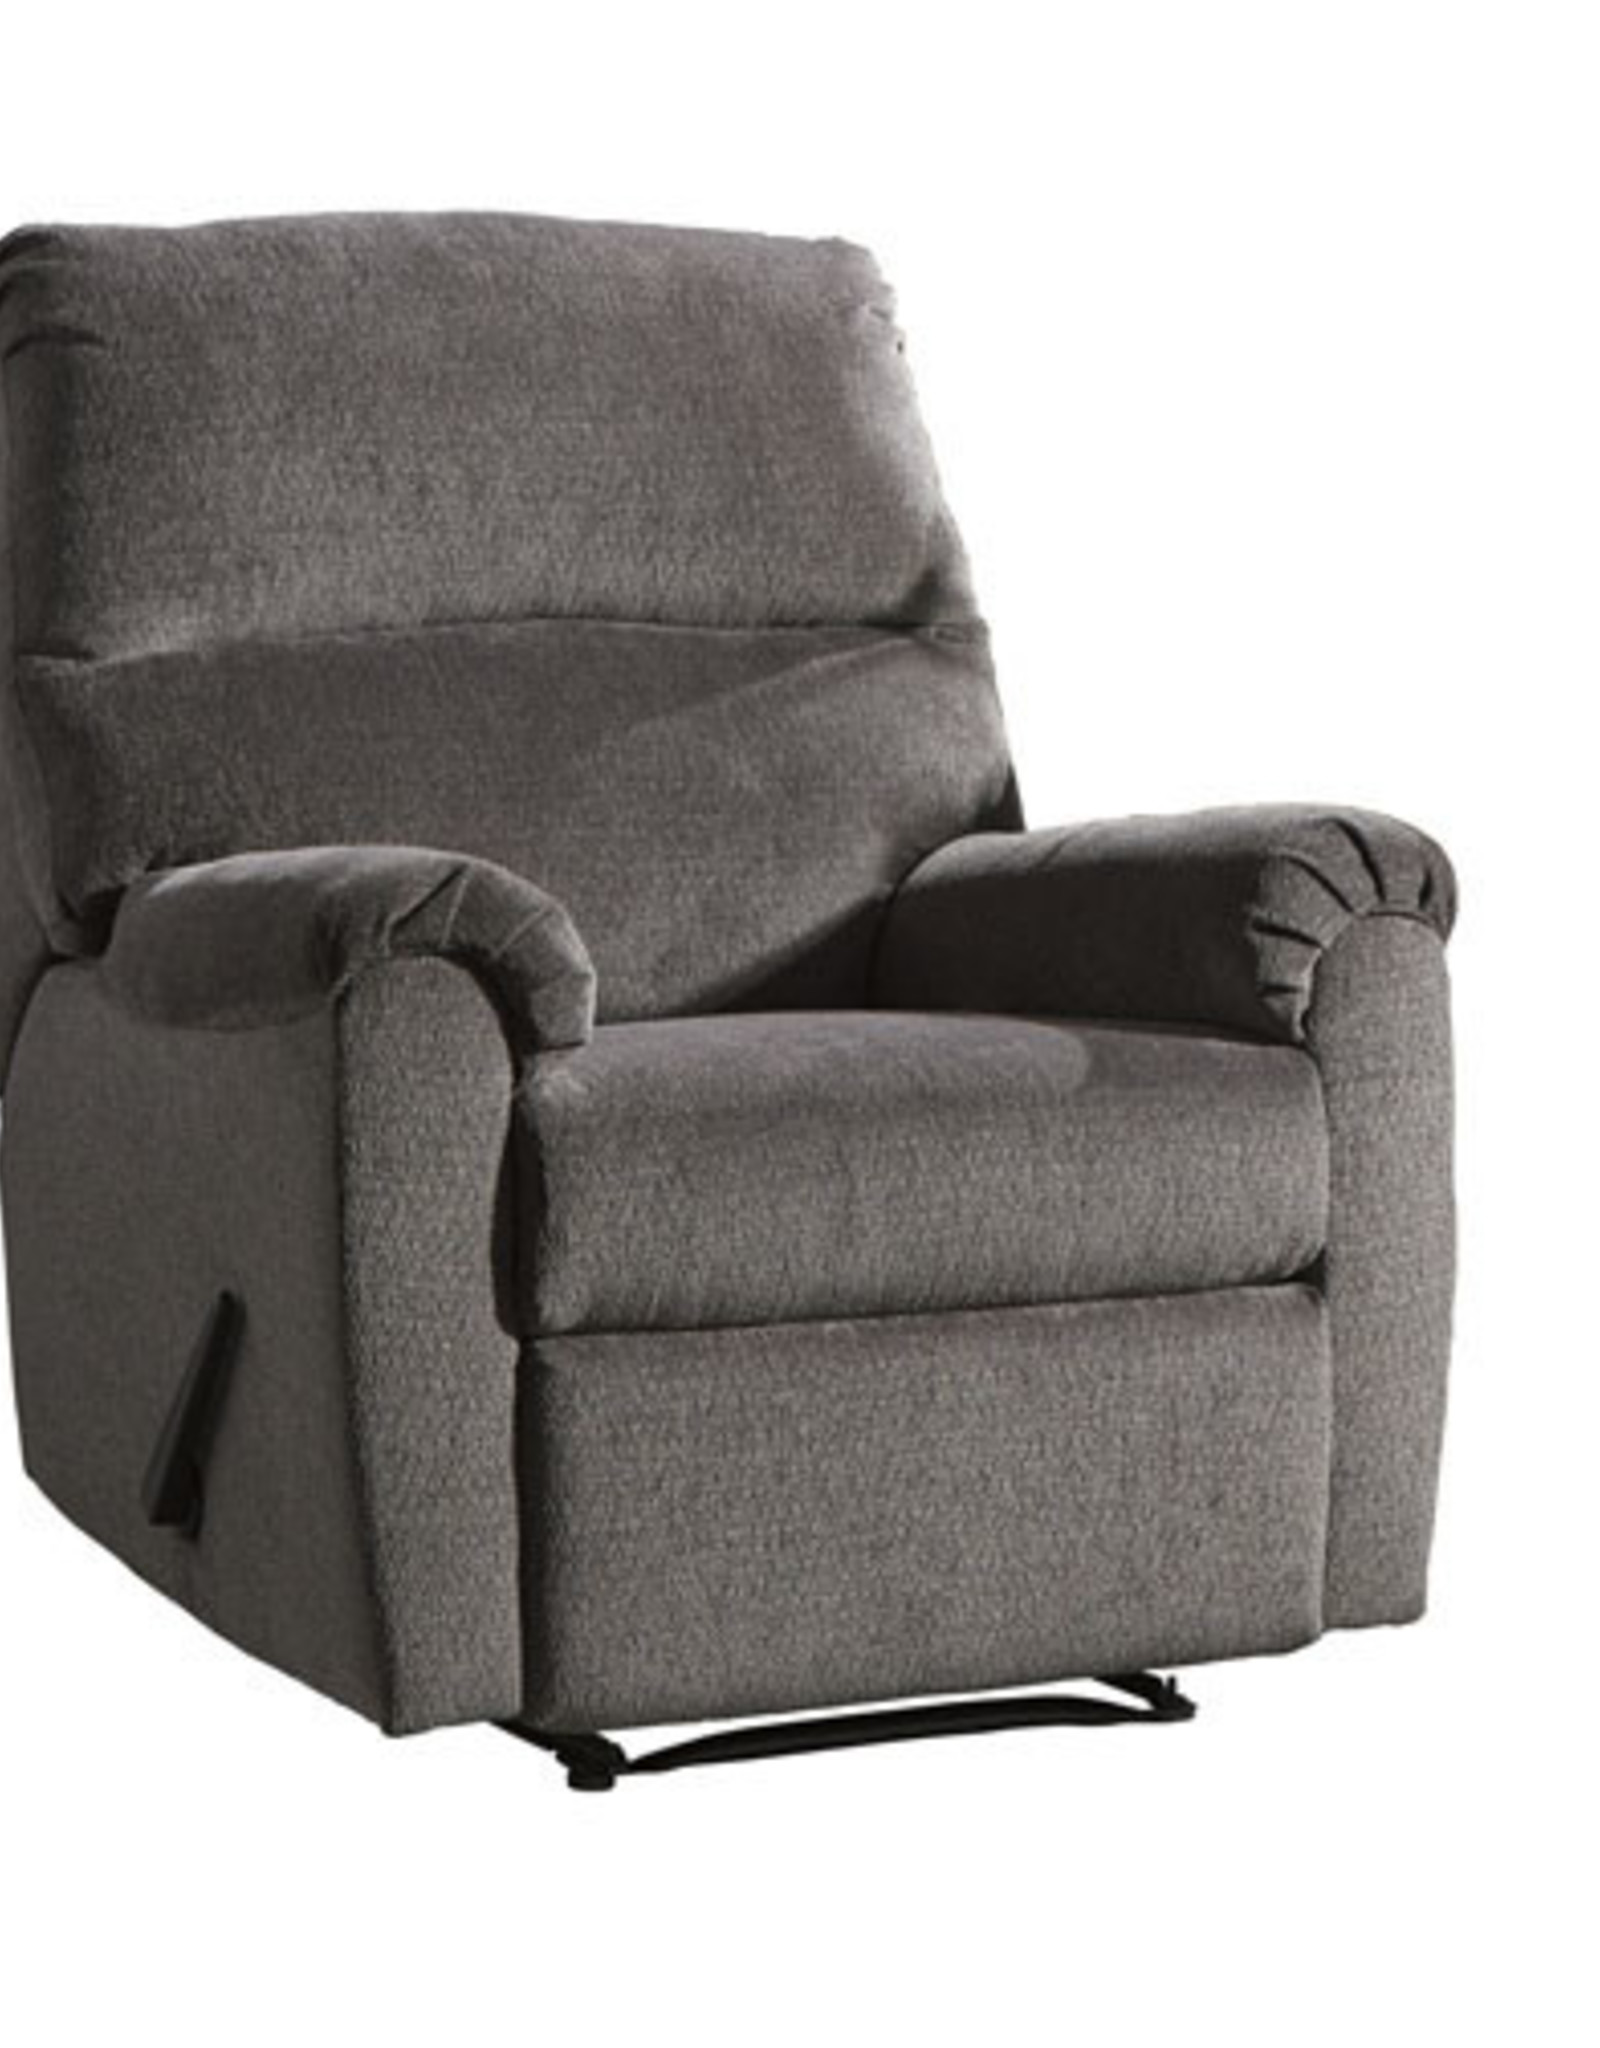 Nerviano Zero Wall Recliner (Gray) - Online Only